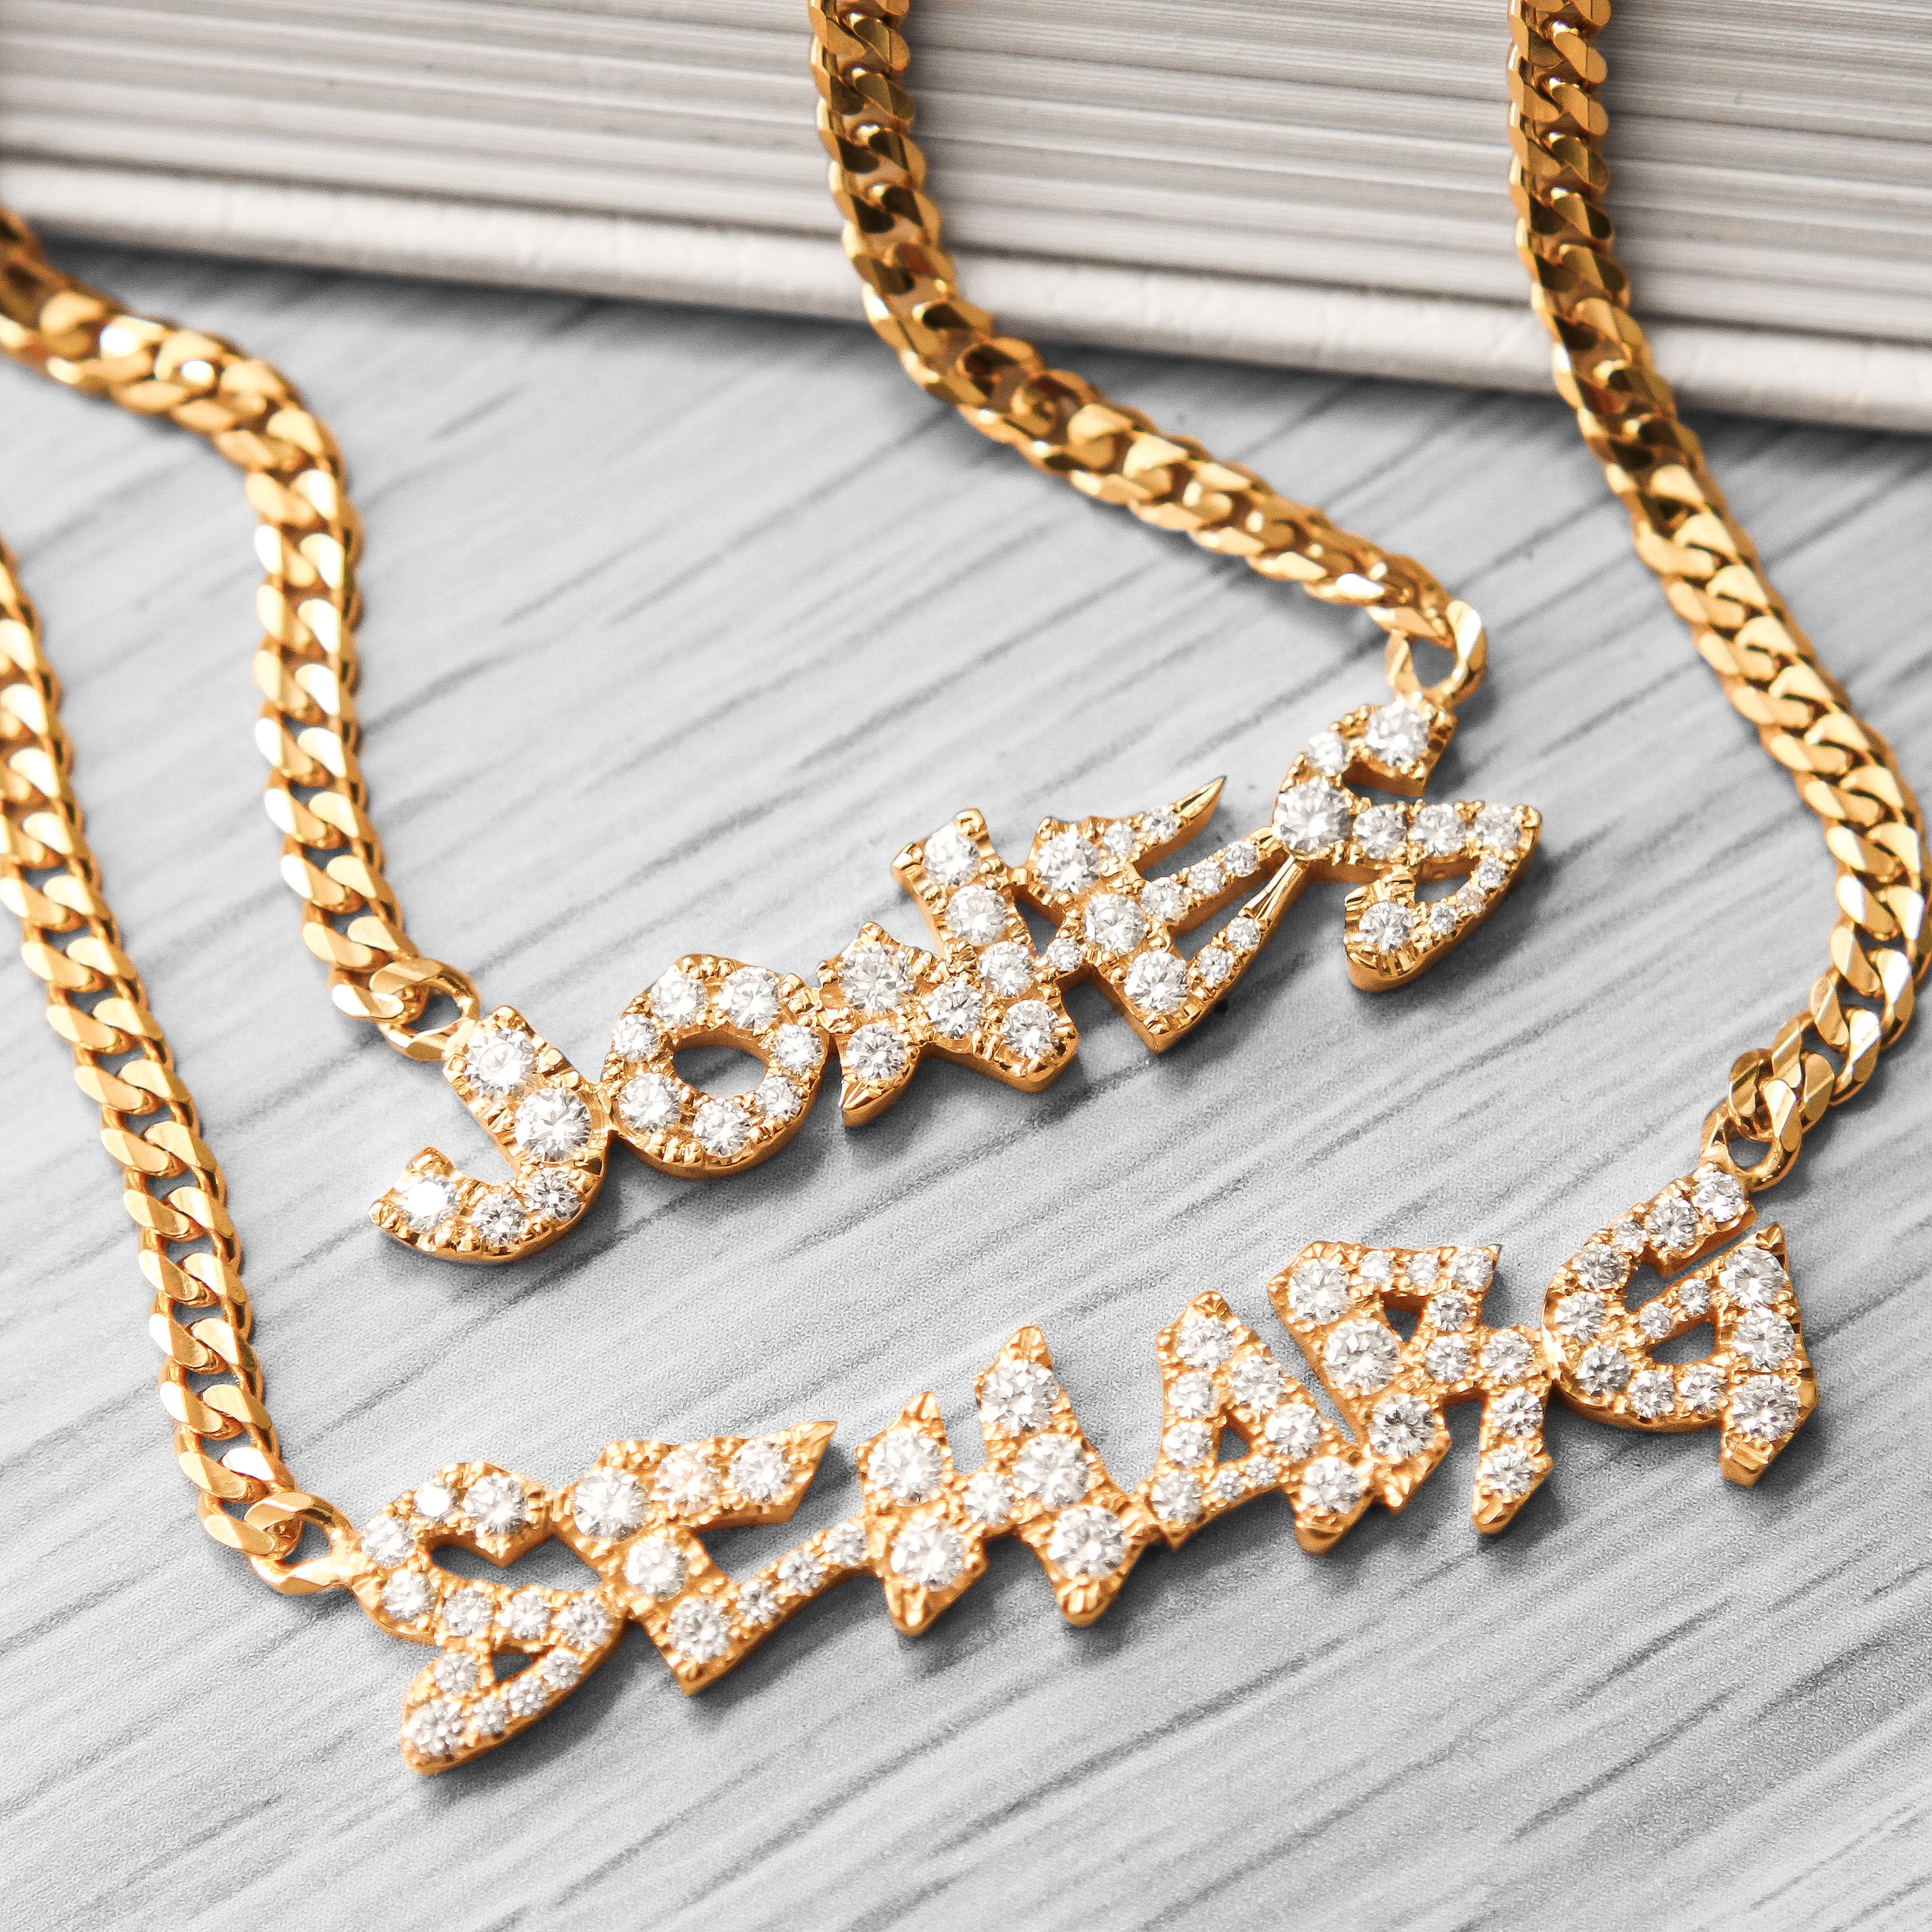 Nameplate Necklace with Diamonds_Shayan Afsharjpg